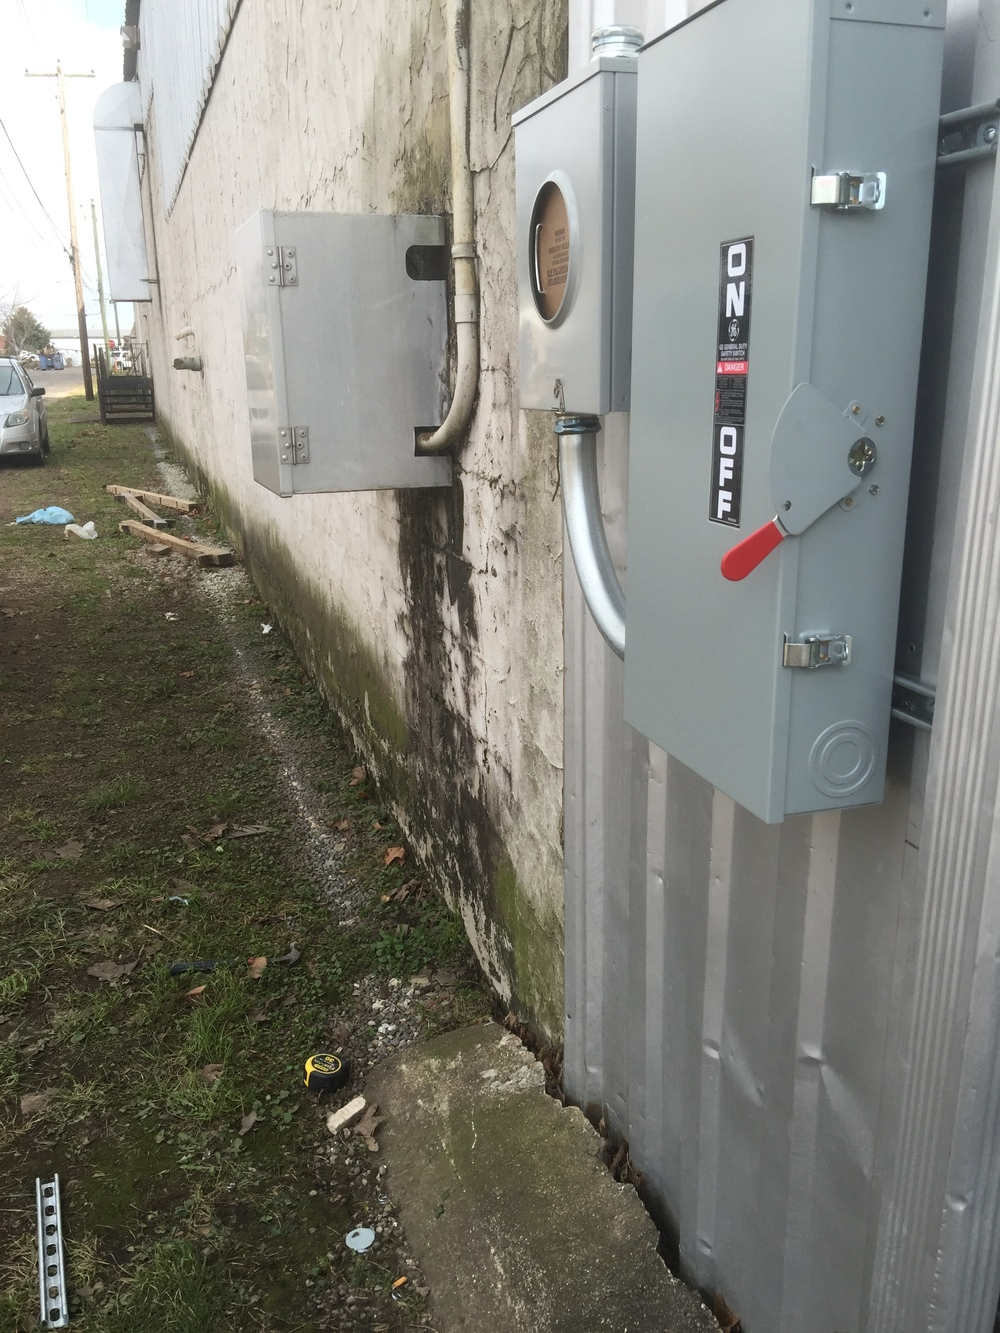 It was very cold. 29 degrees while installing this meter and panel.